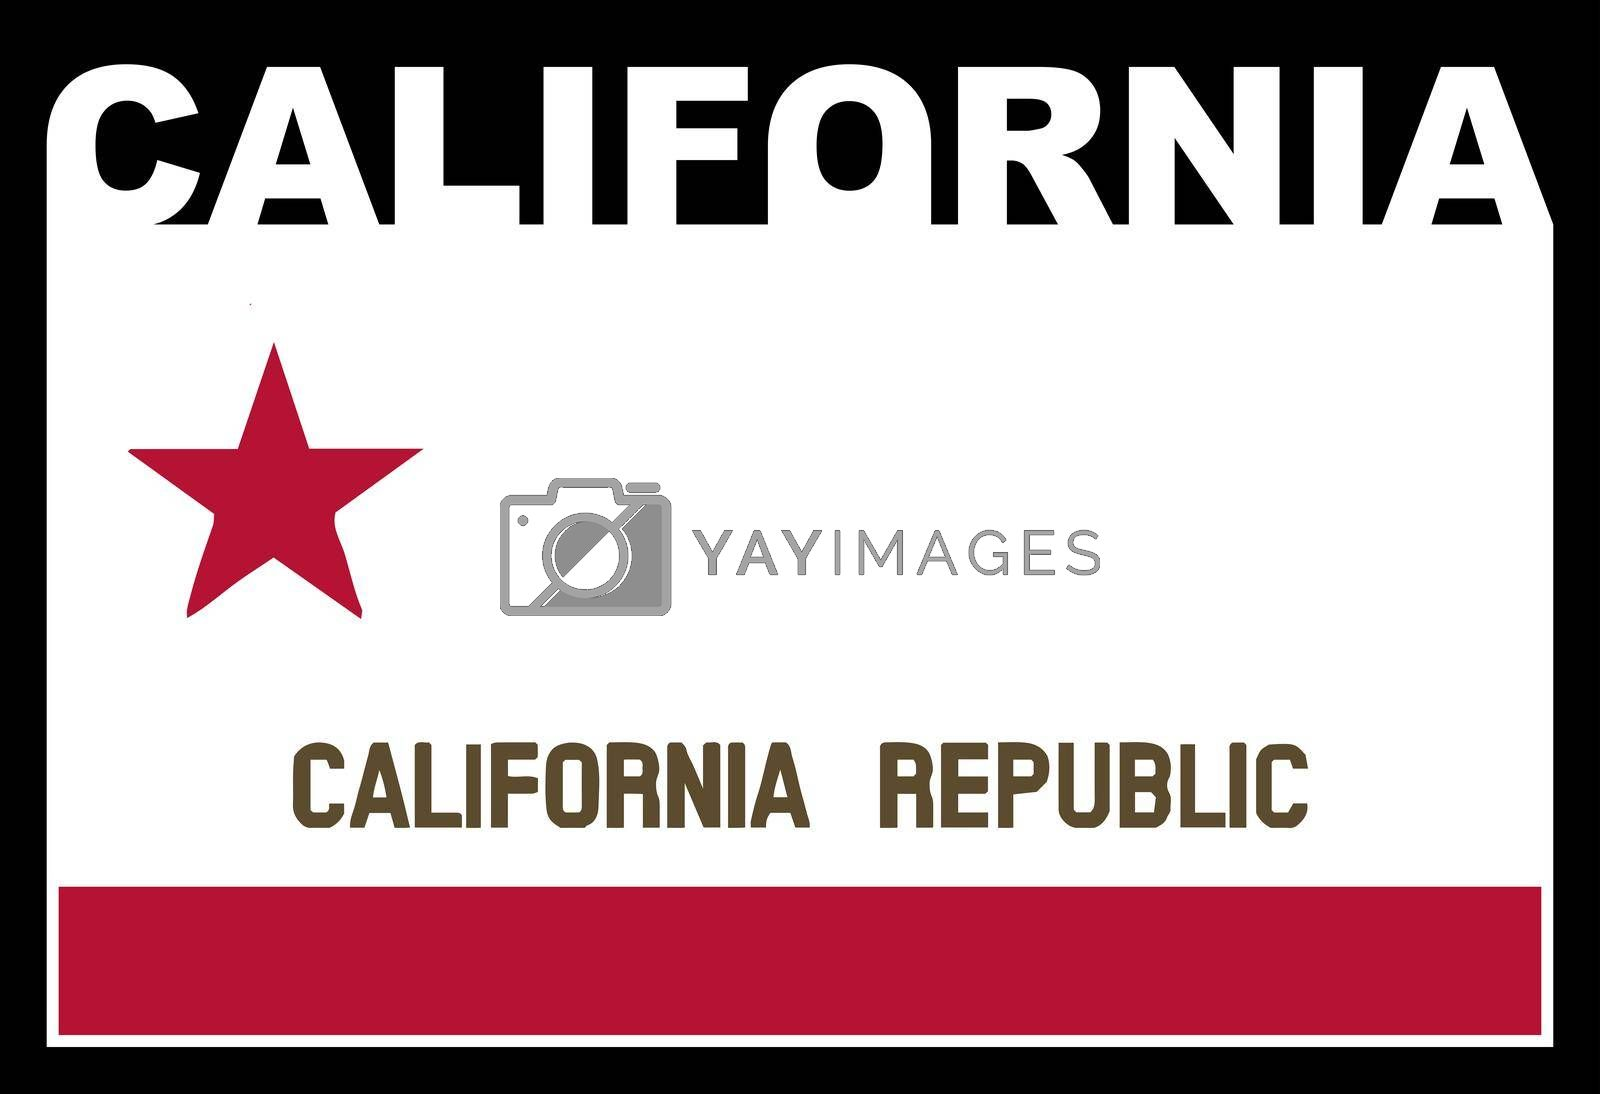 California state text in silhouette set over the state flag